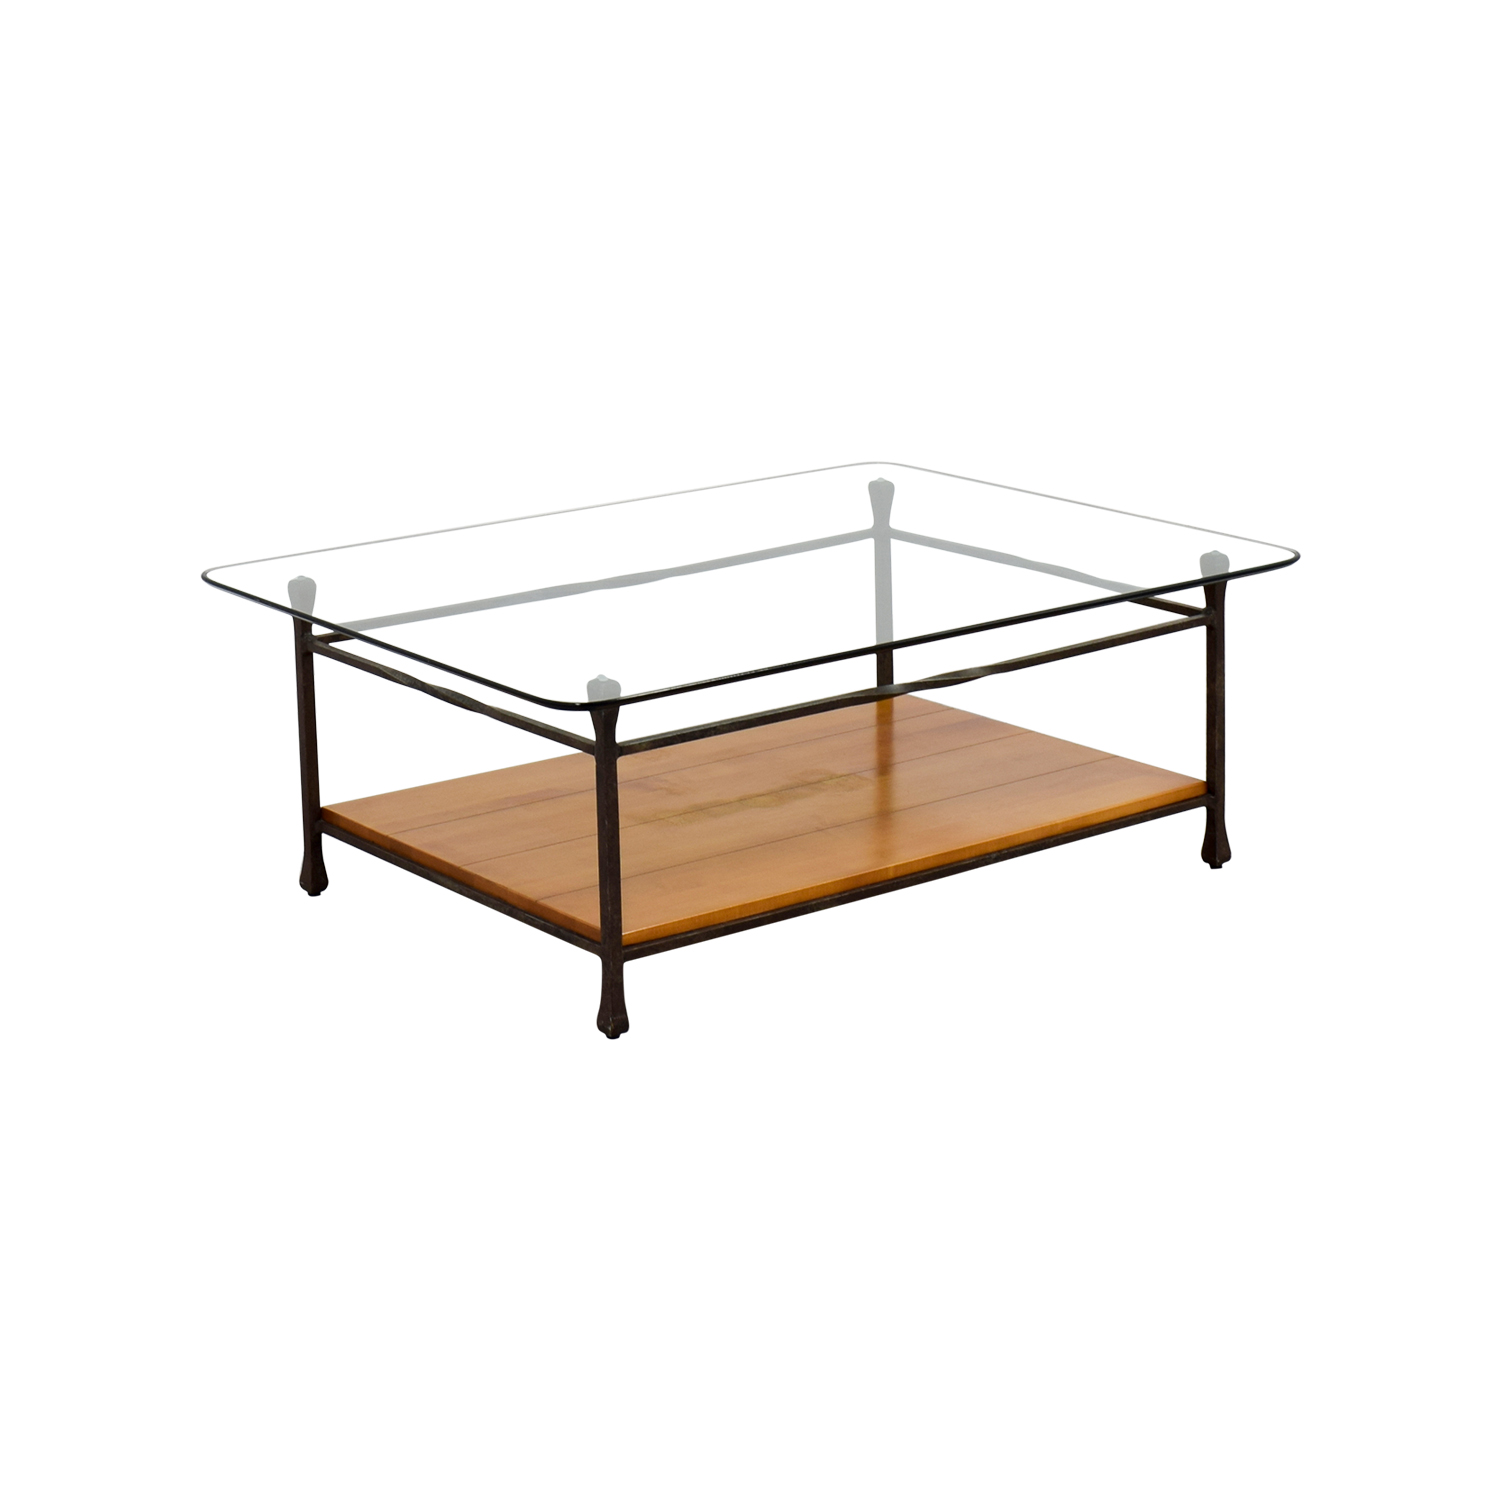 Used Ethan Allen Coffee Tables: Ethan Allen Ethan Allen Glass & Wood Coffee